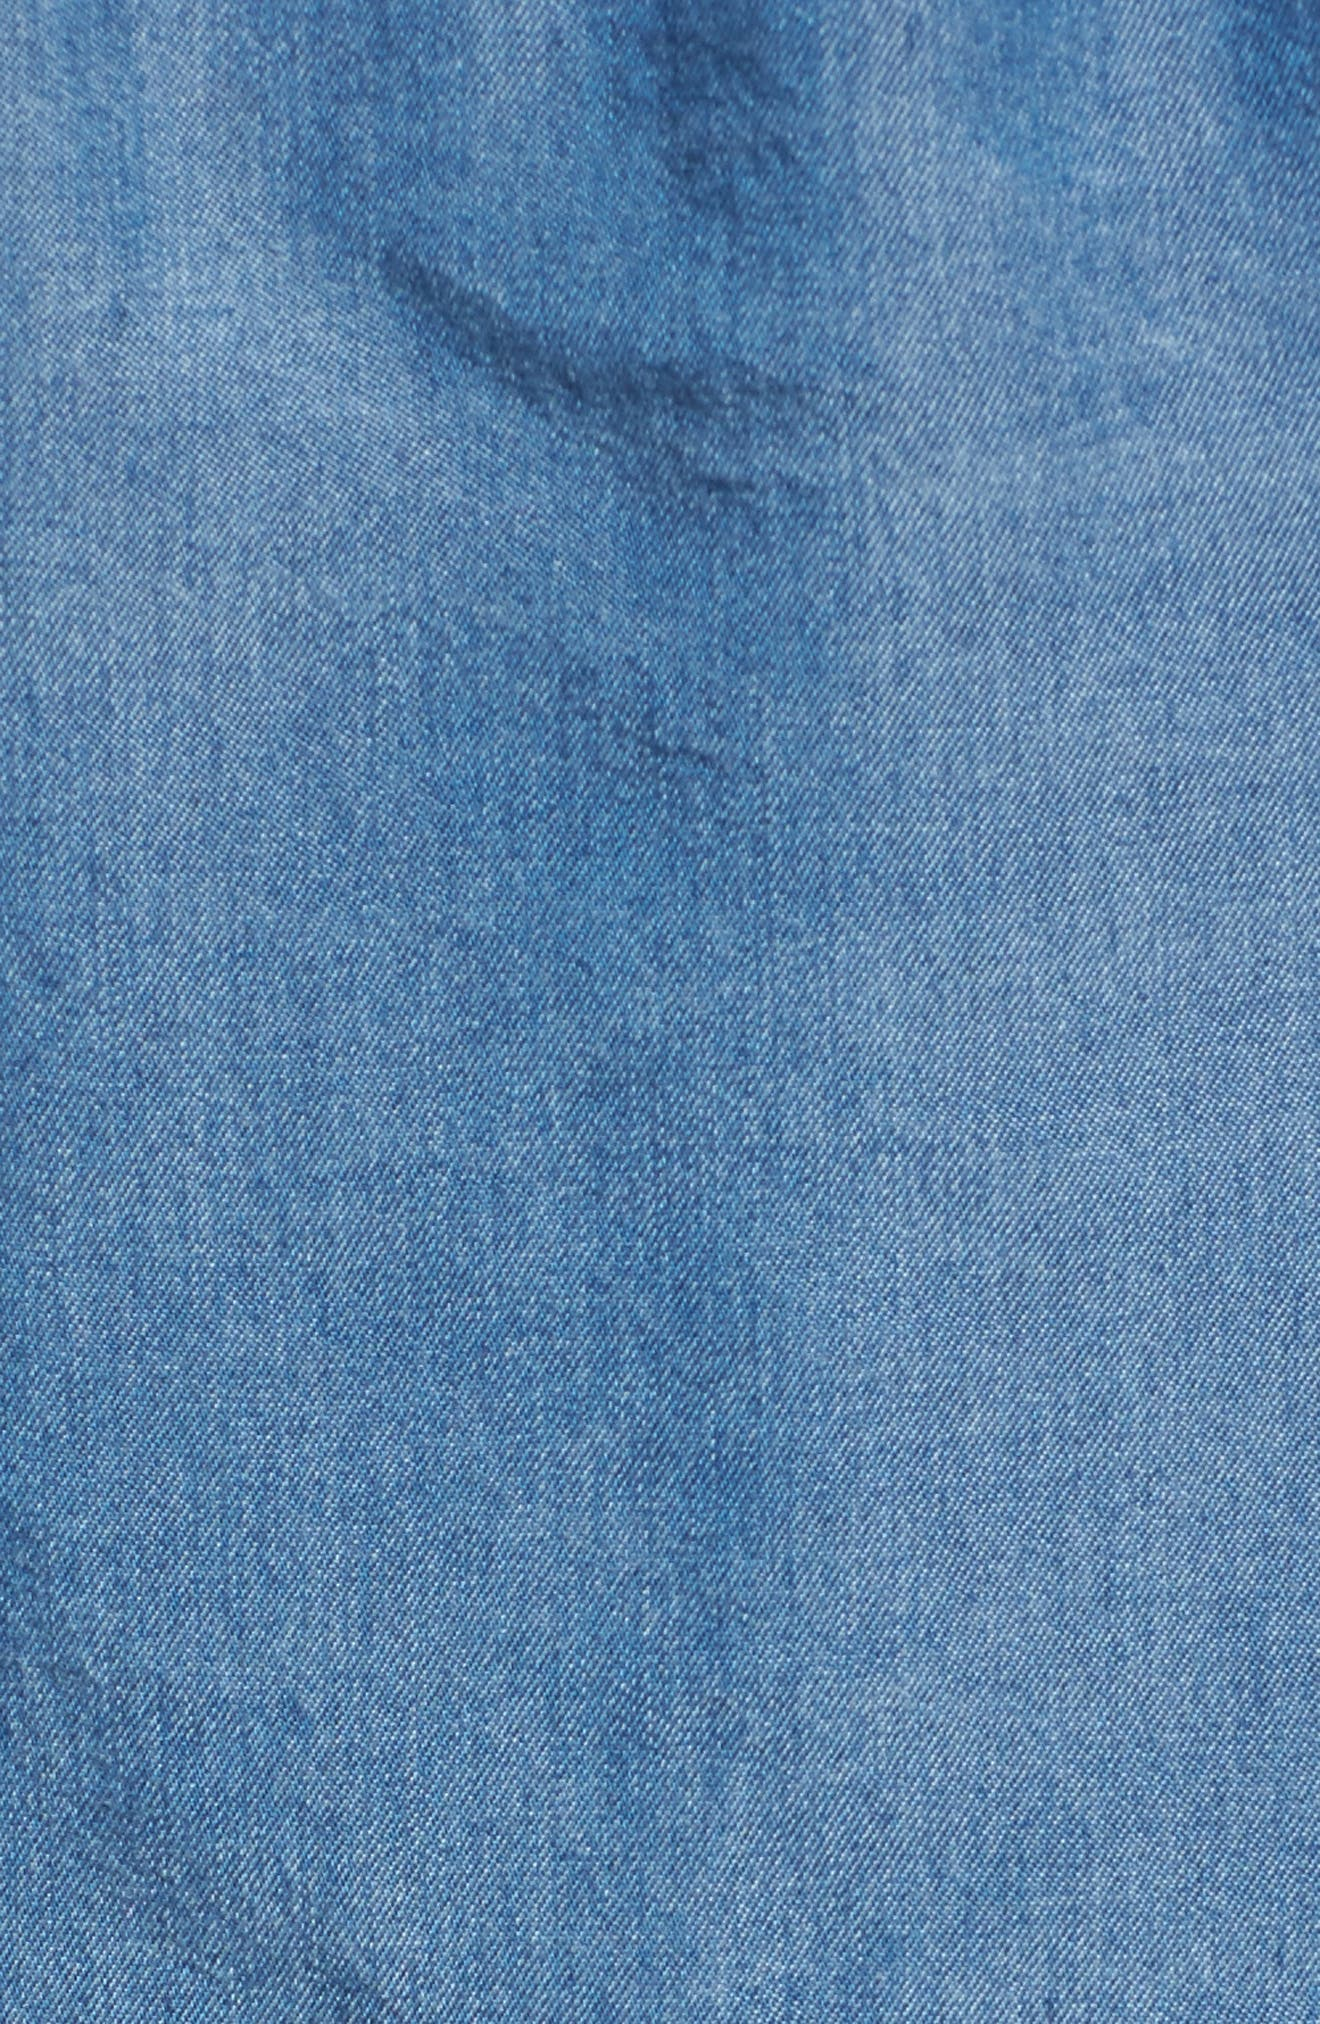 Off the Shoulder Chambray Top,                             Alternate thumbnail 5, color,                             Med Wash